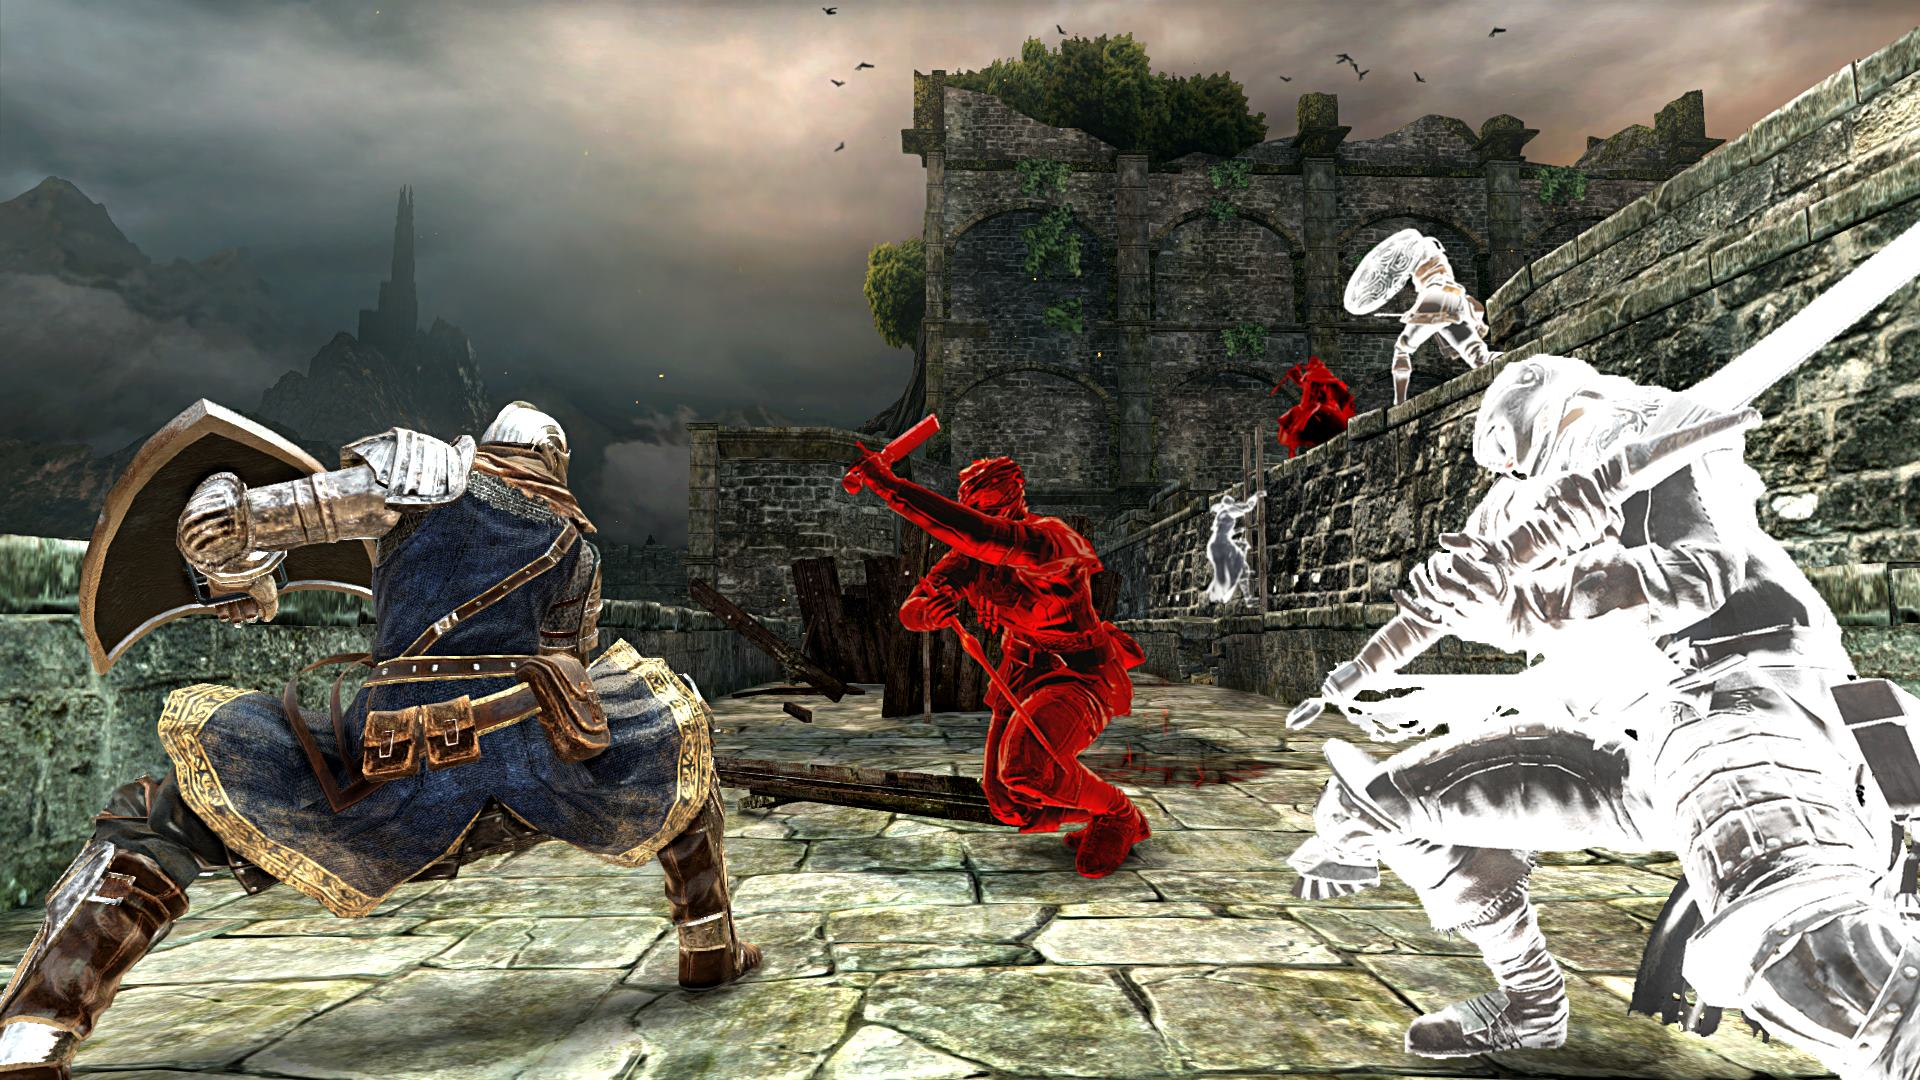 Dark Souls 2: Scholar of the First Sin is more than just a port